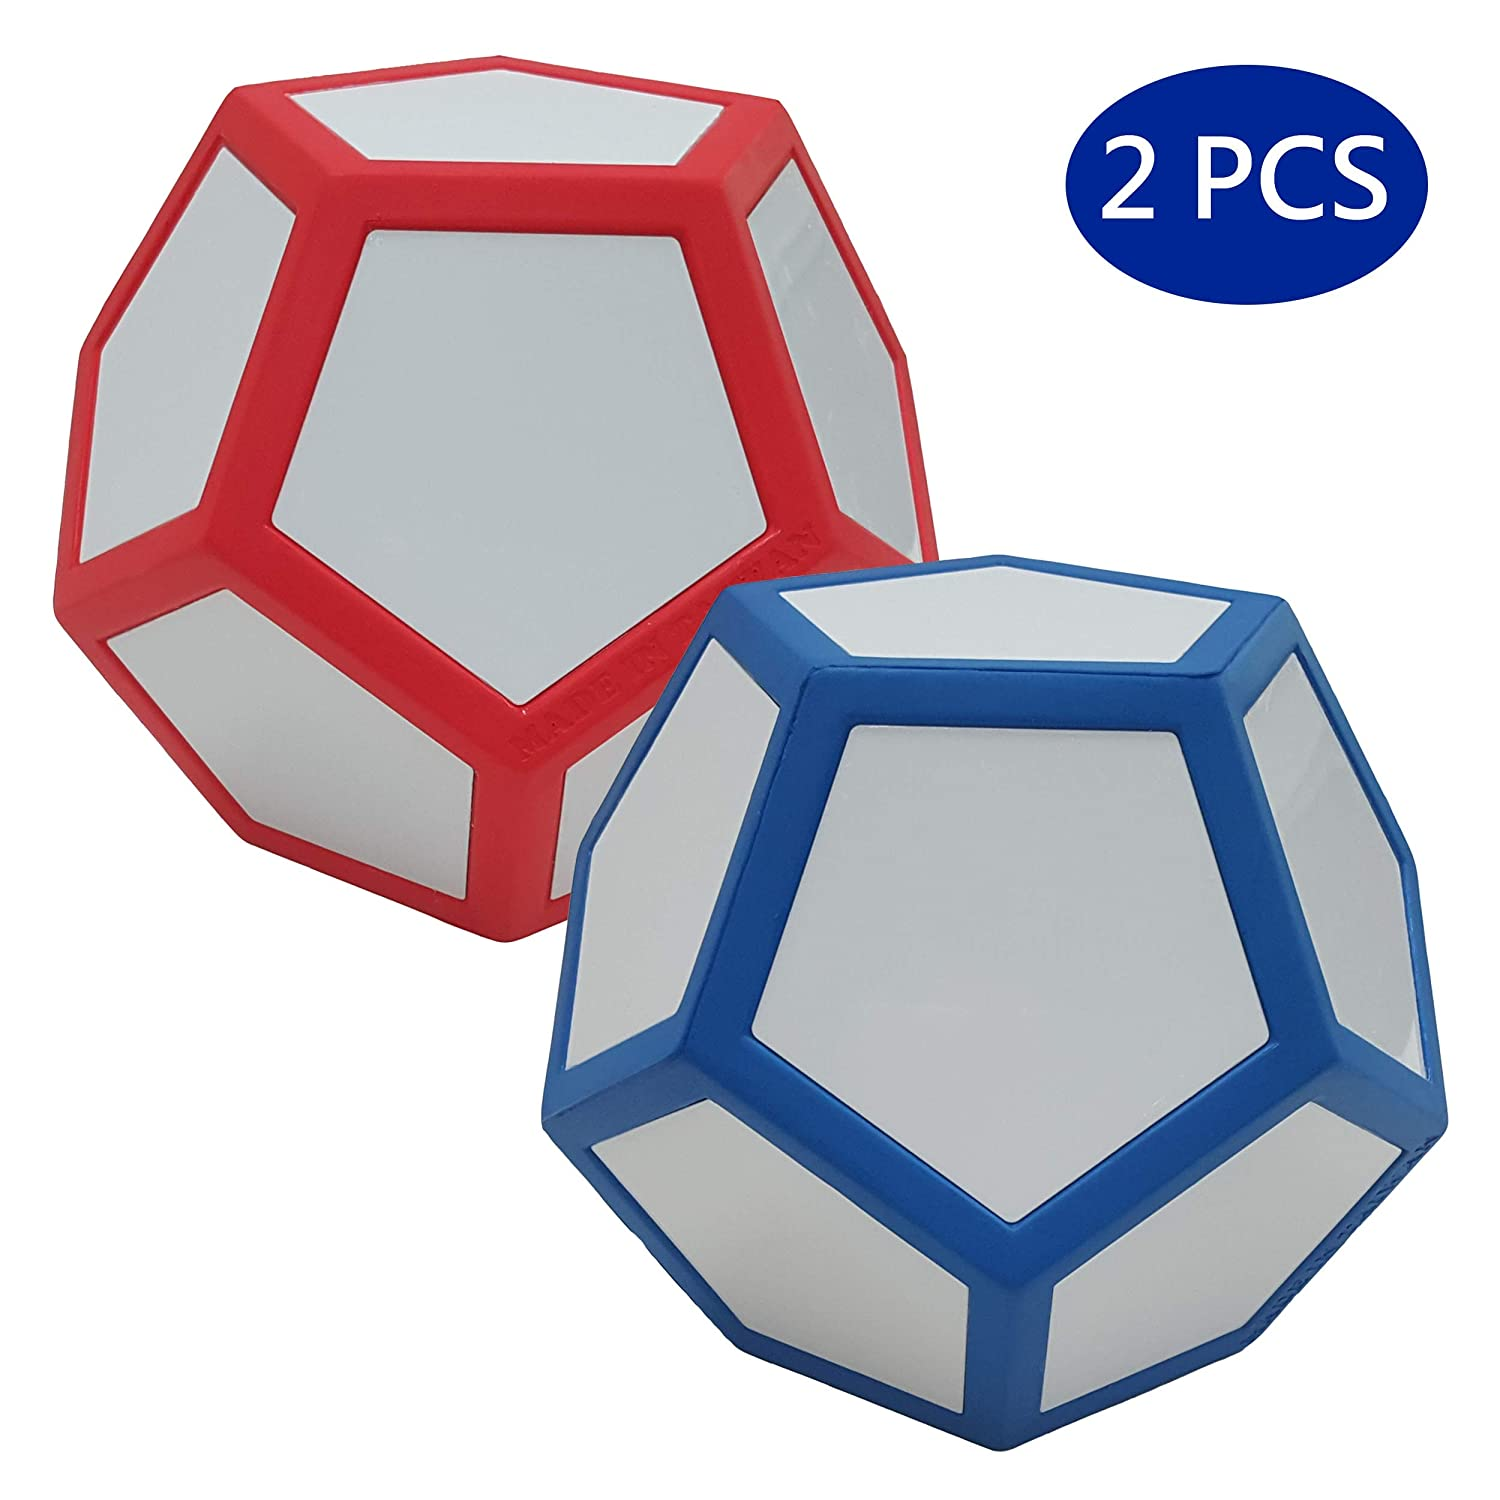 Red & bluee Macro Giant 6.7 Inch Dry Erase Polyhedral Foam Dice, Jumbo, Set of 2, Black and Yellow, 12Sided, Parenting Activity, Kid Toy, Preschool, Math Learning, Team Games